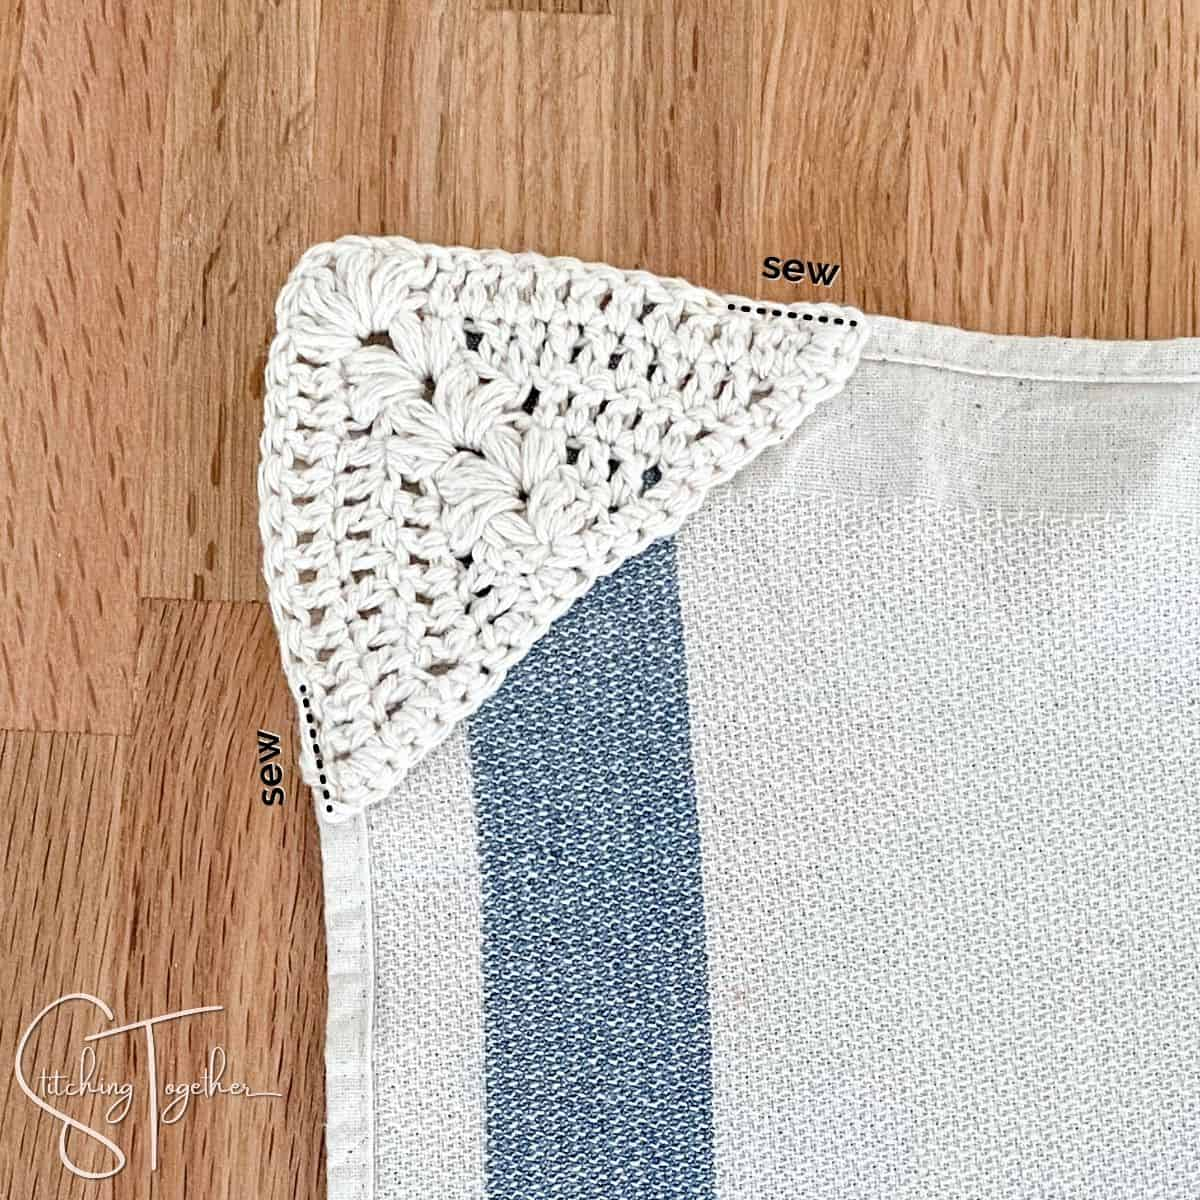 lines showing where to sew to attach the towel topper